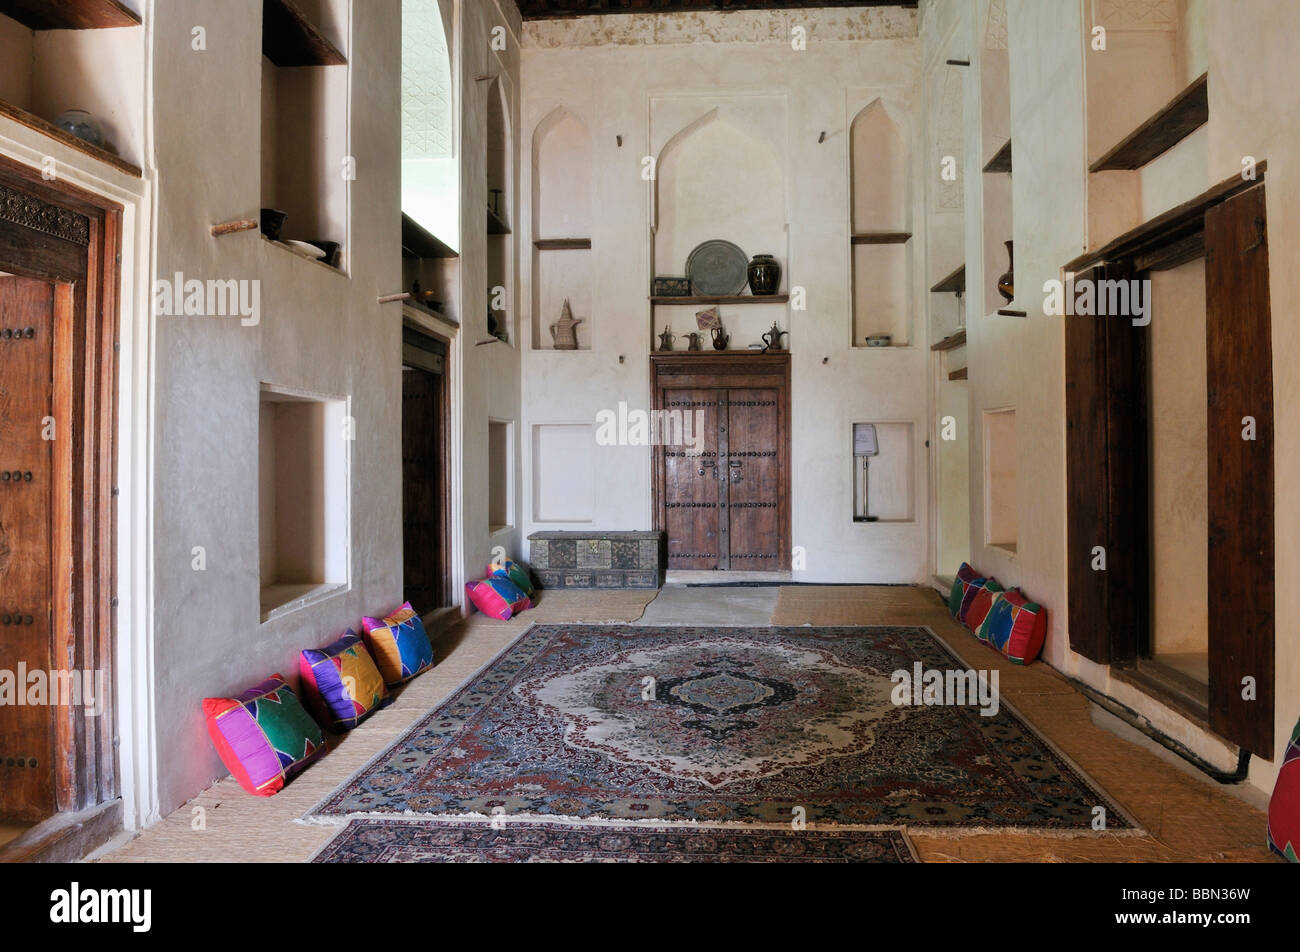 traditional arabian living room at jabrin castle or fort